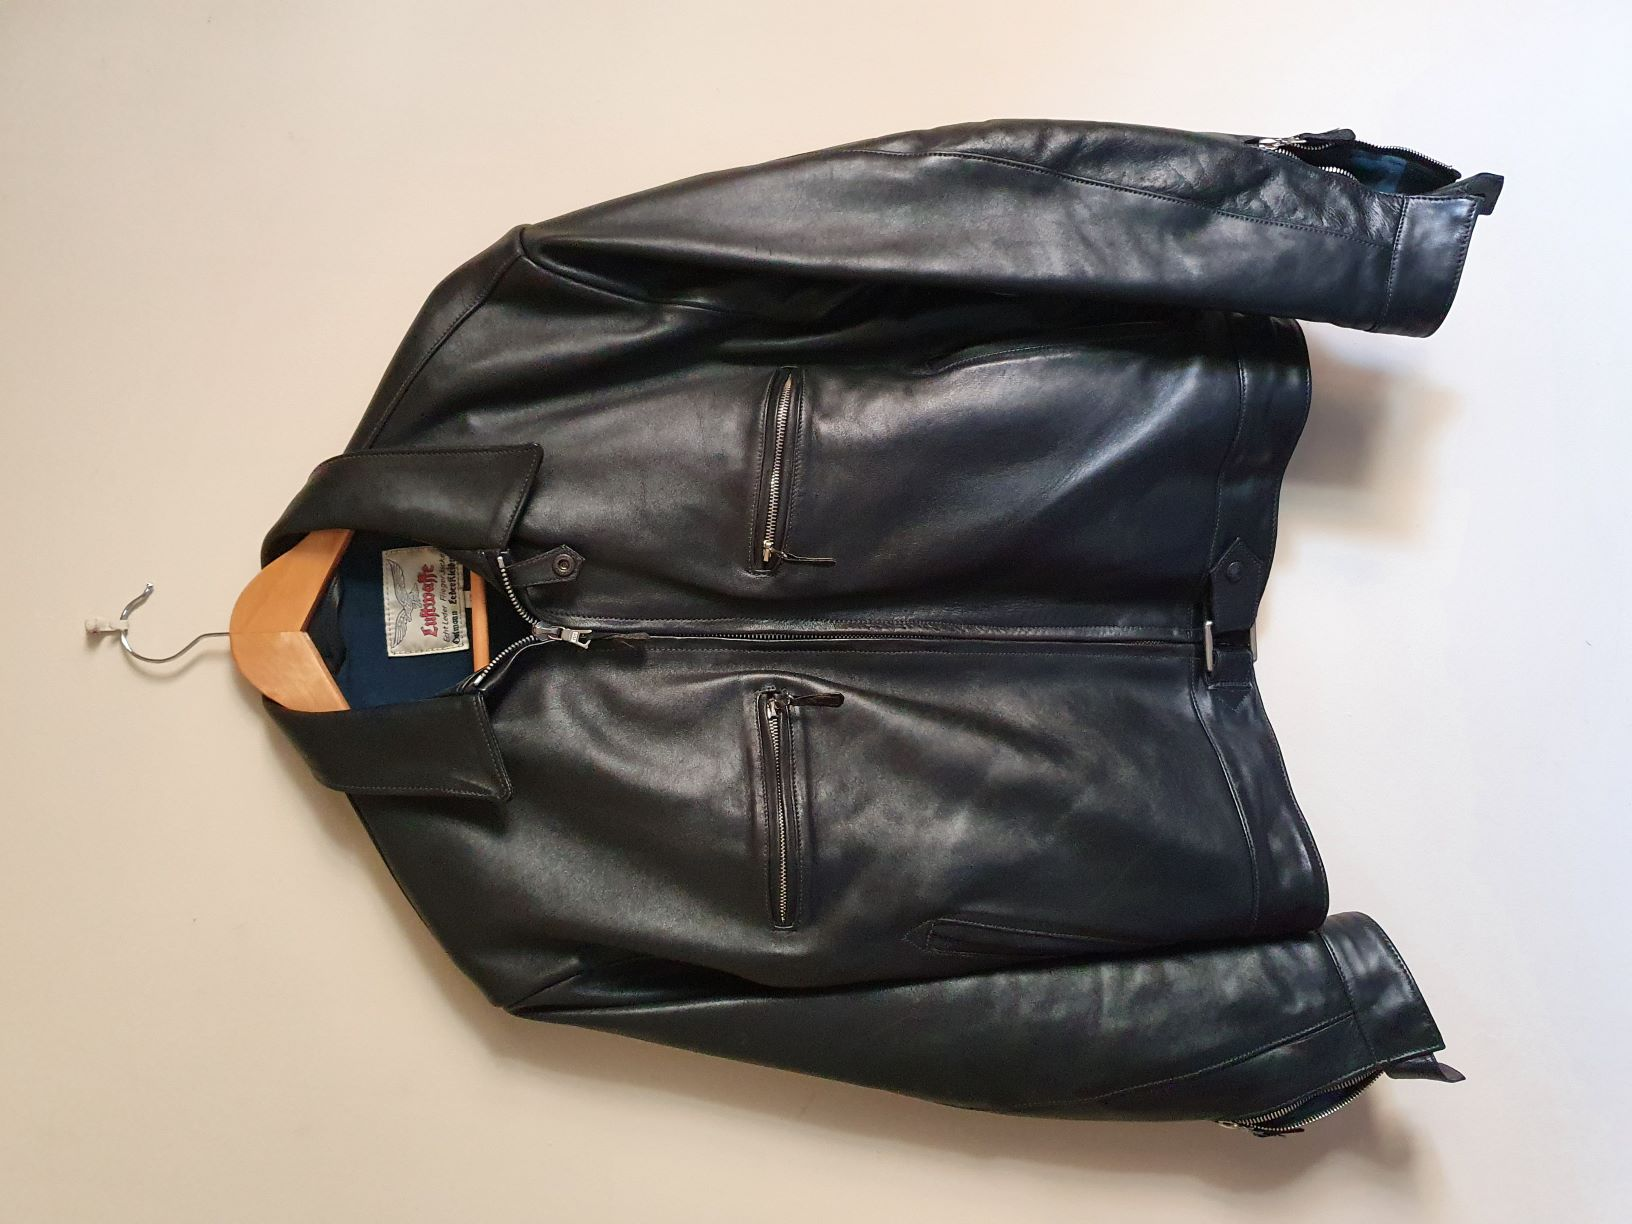 Eastman Ostmann WWII German Flying Jacket-Black Leather Size 40  Image